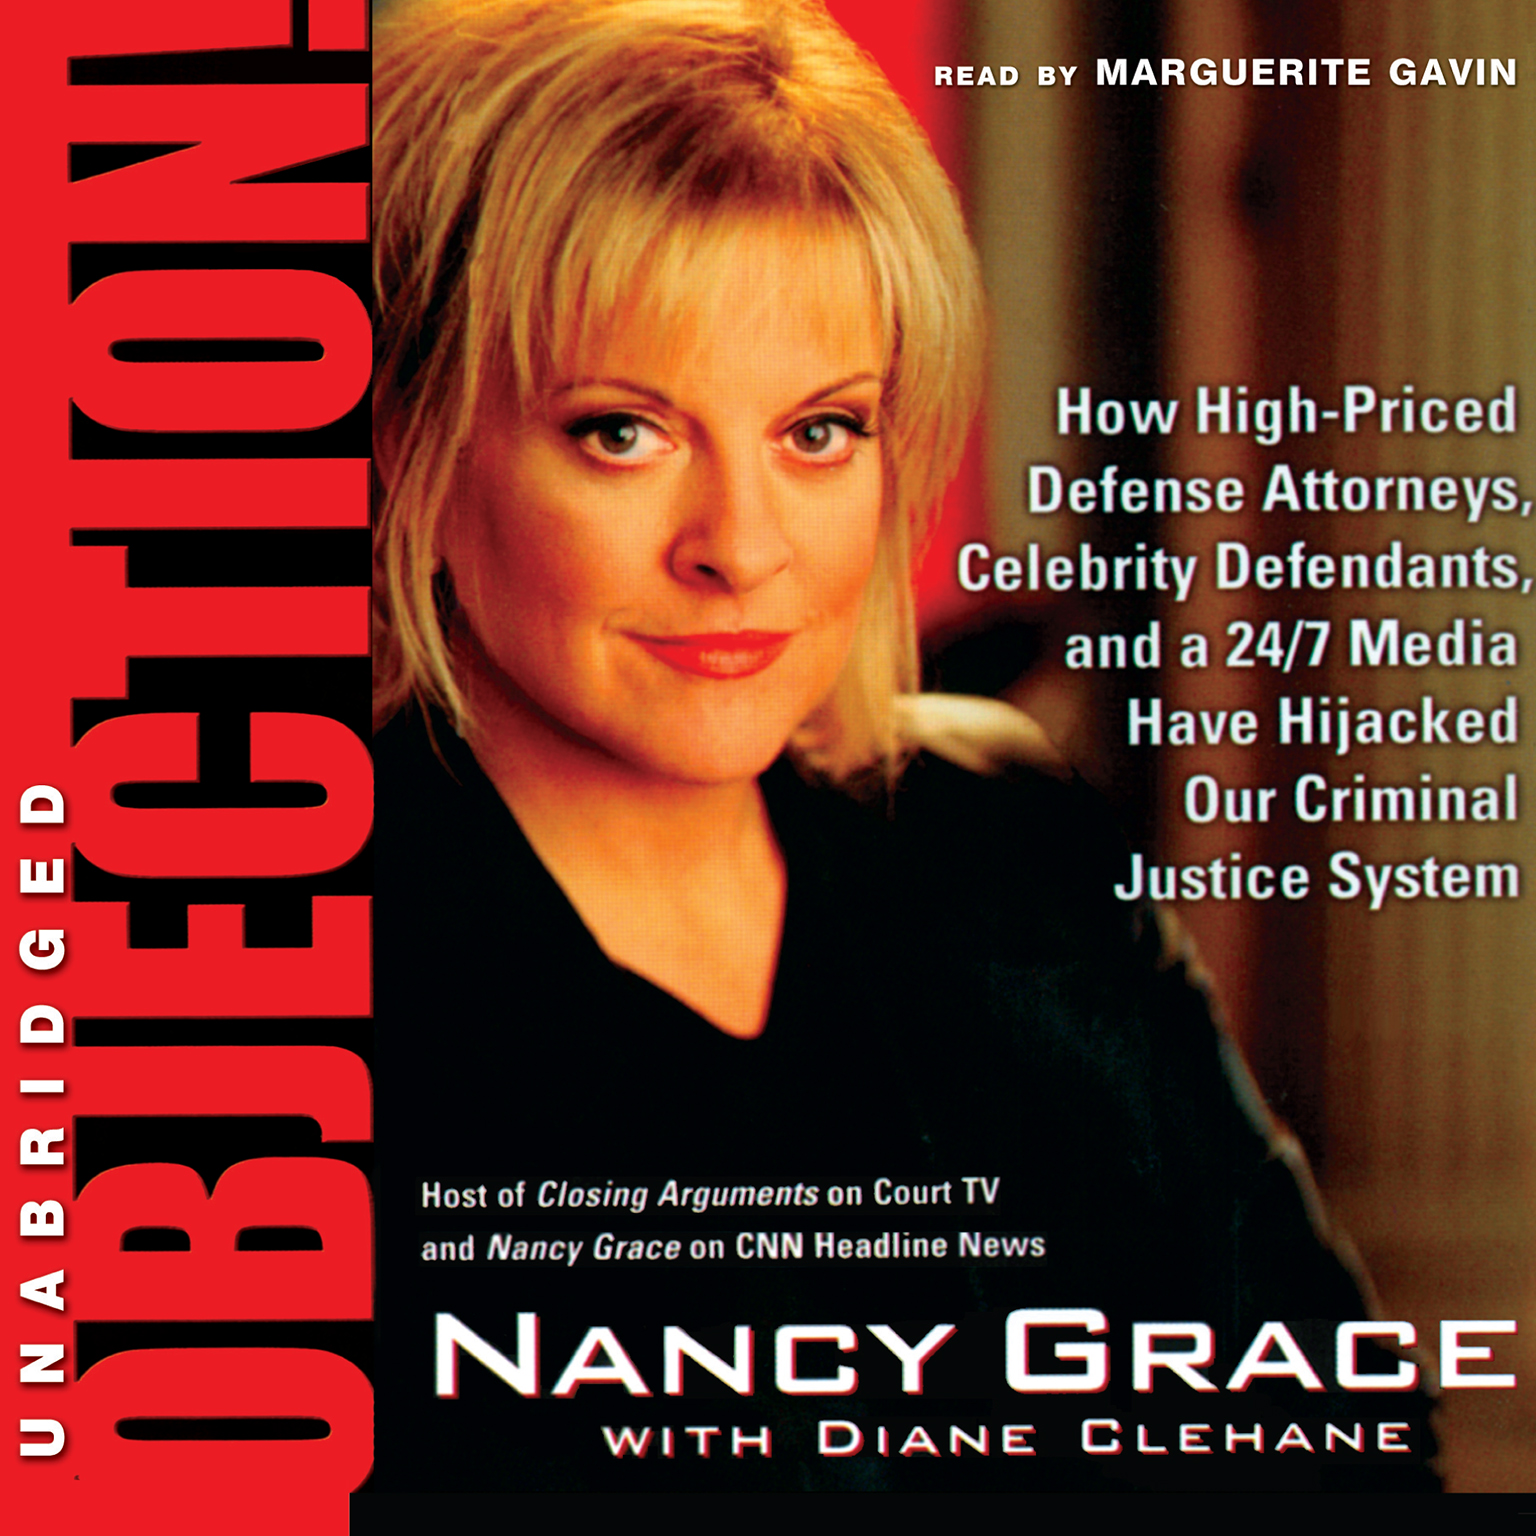 Printable Objection!: How High-Priced Defense Attorneys, Celebrity Defendants, and a 24/7 Media Have Hijacked Our Criminal Justice System Audiobook Cover Art